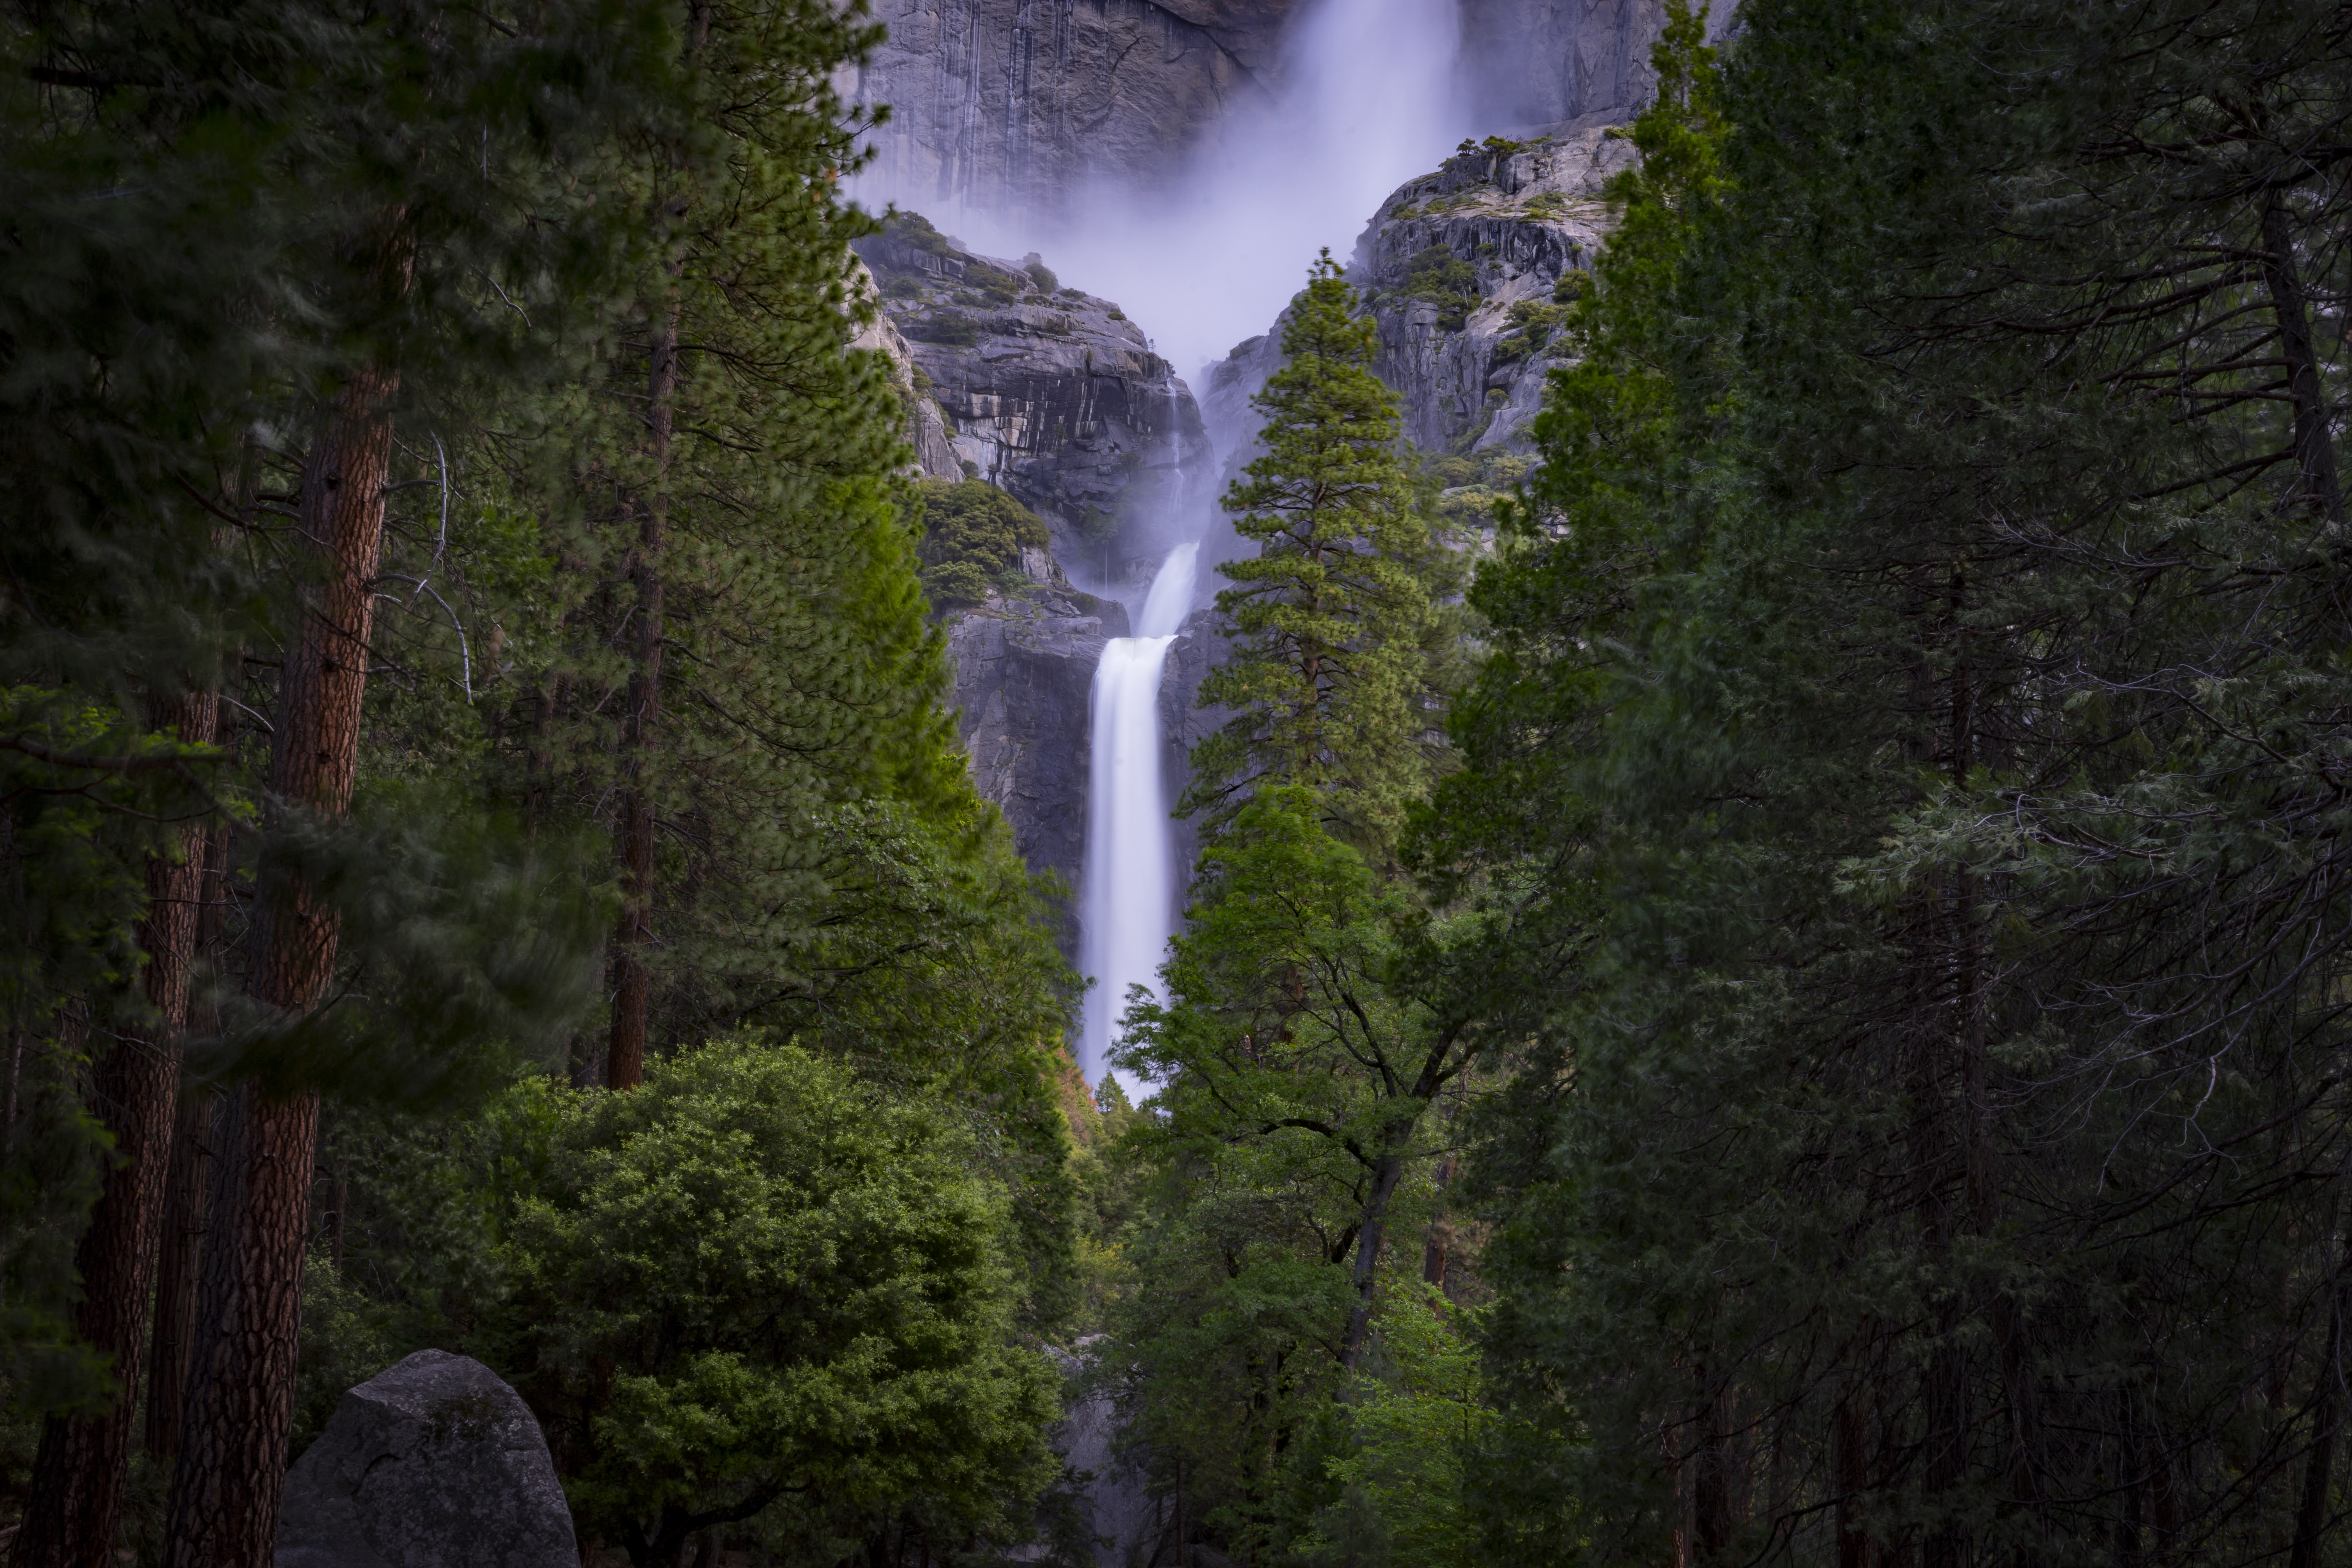 A frothy waterfall pouring down a rock formation in Yosemite Valley